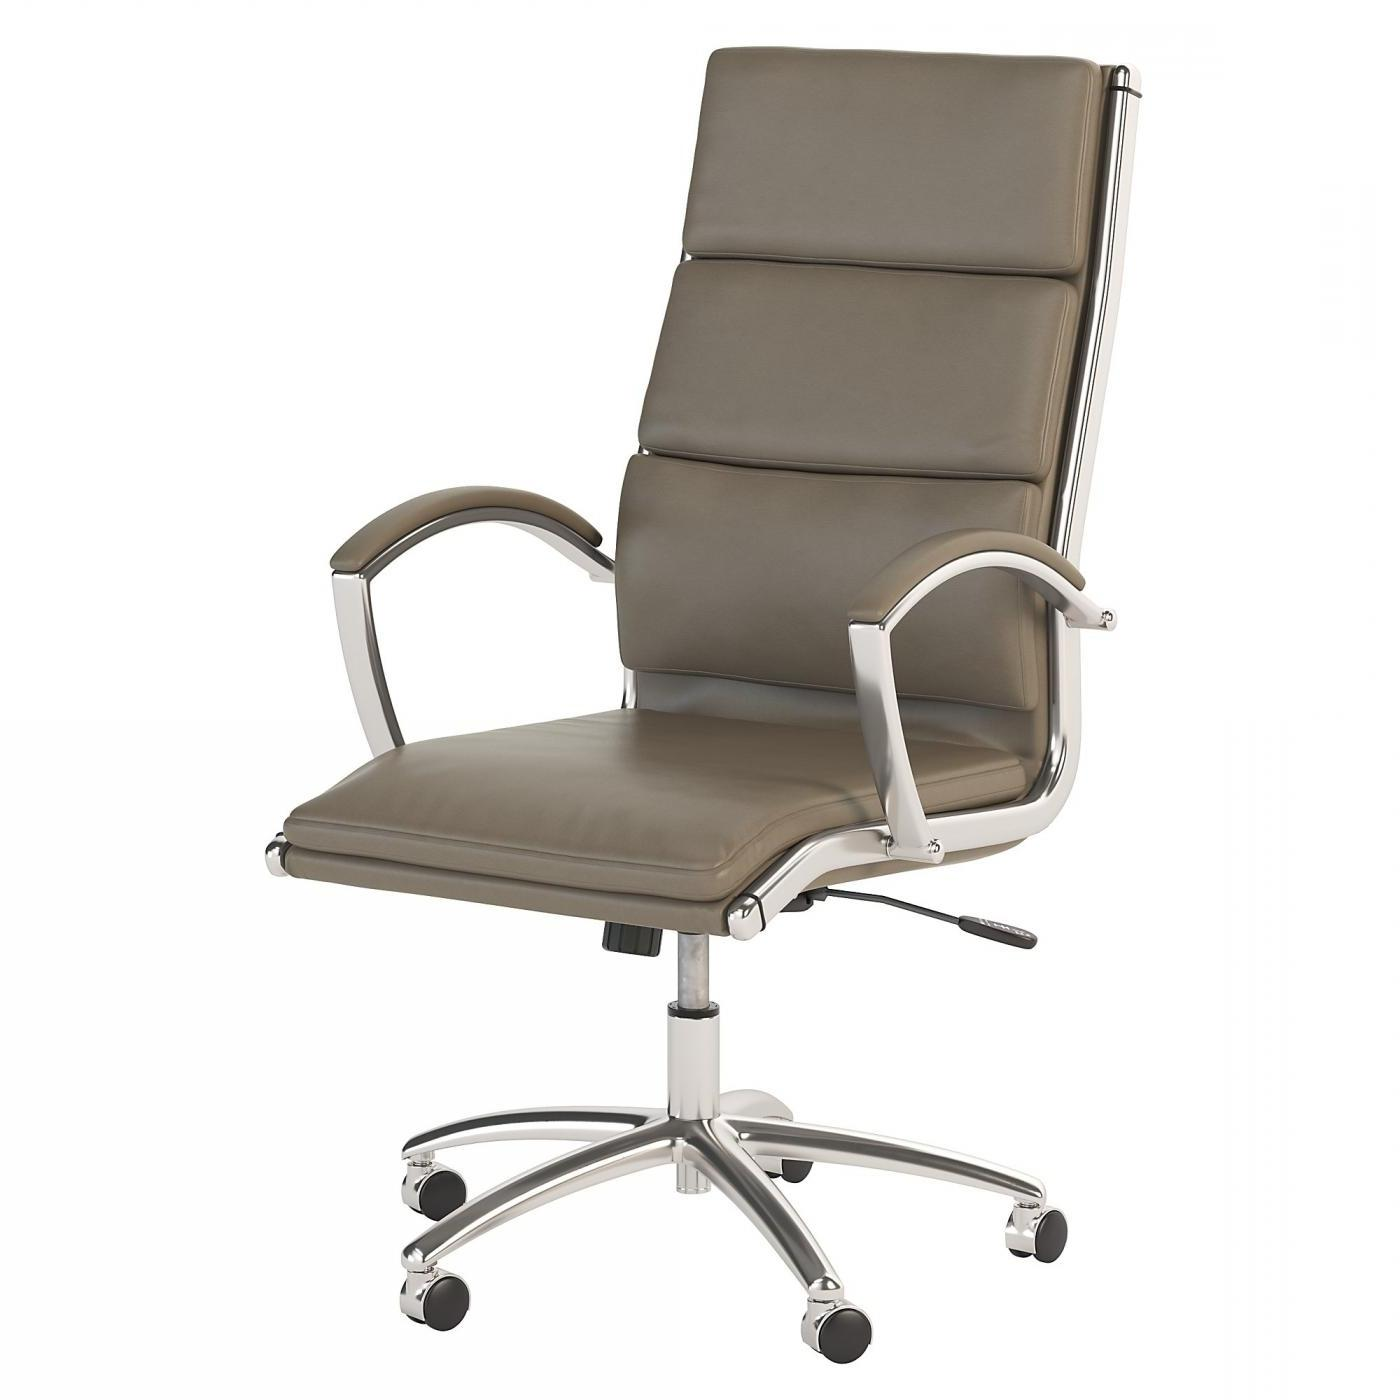 BUSH BUSINESS FURNITURE MODELO HIGH BACK LEATHER EXECUTIVE OFFICE CHAIR #EH-CH1701WGL-03. FREE SHIPPING:  SALE DEDUCT 10% MORE ENTER '10percent' IN COUPON CODE BOX WHILE CHECKING OUT.